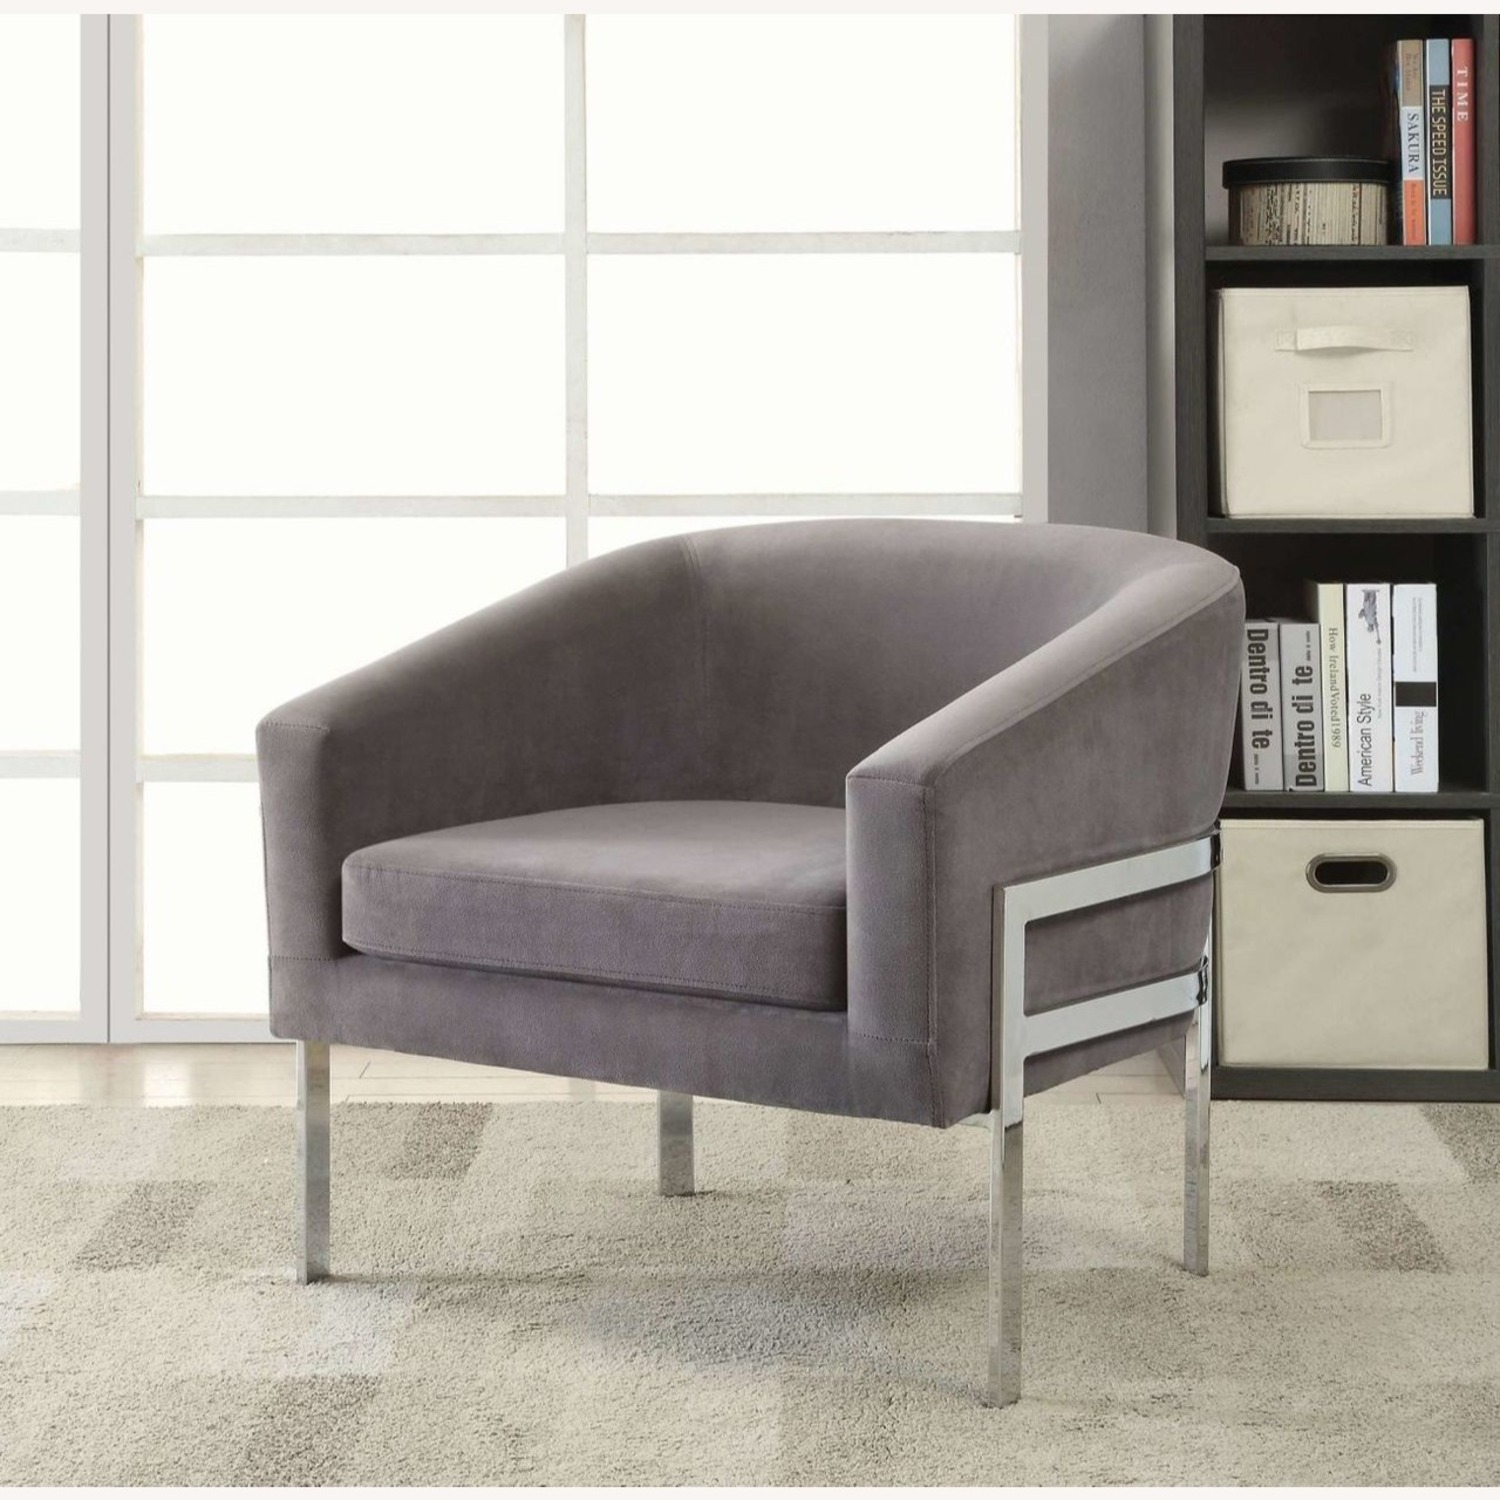 Contemporary Accent Chair in Grey Fabric - image-4